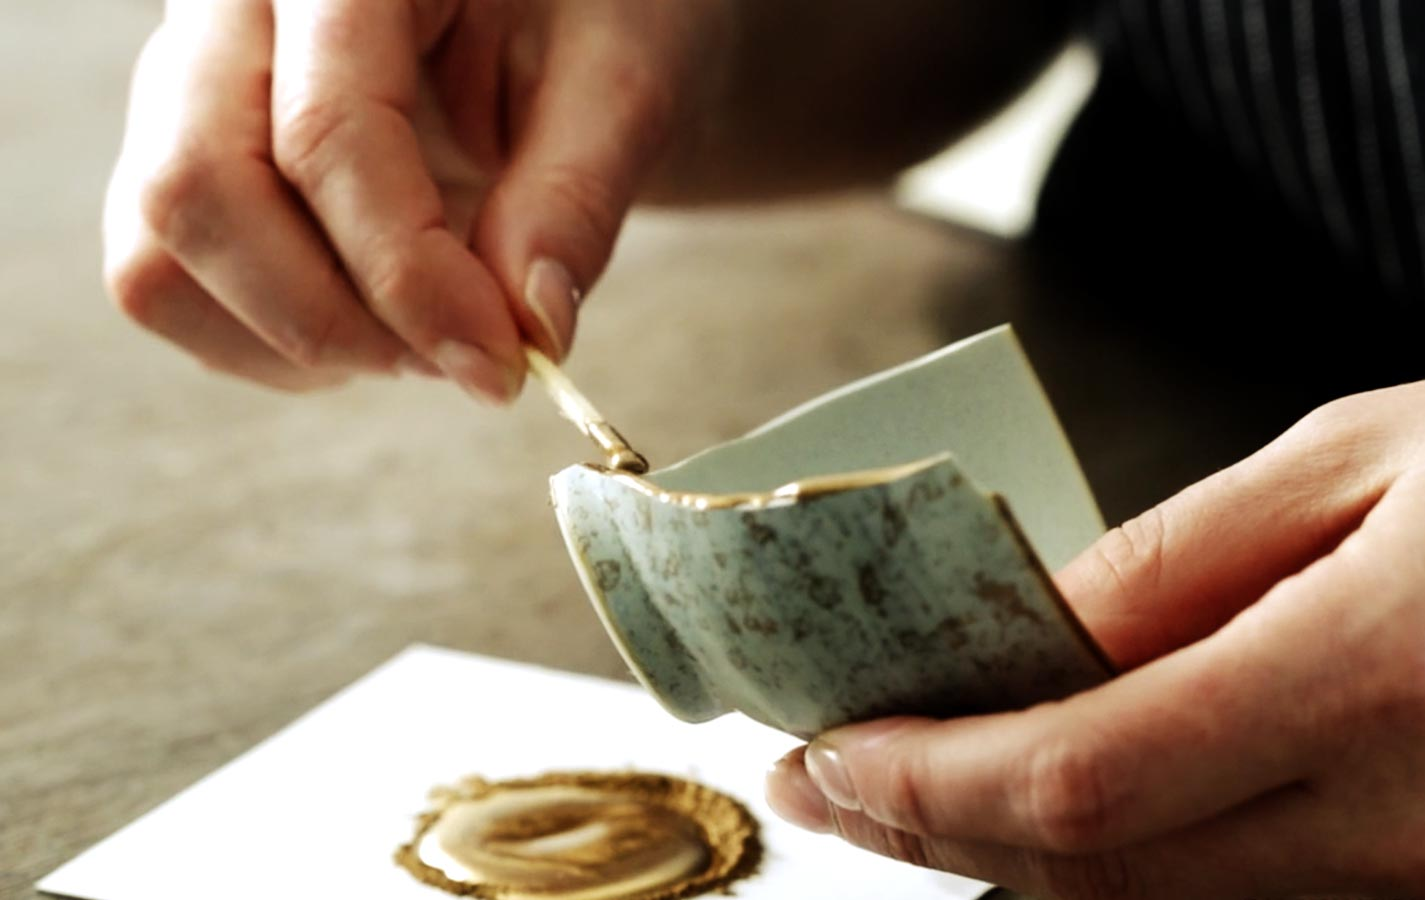 Kintsugi, Japanese art of getting beauty through breaks